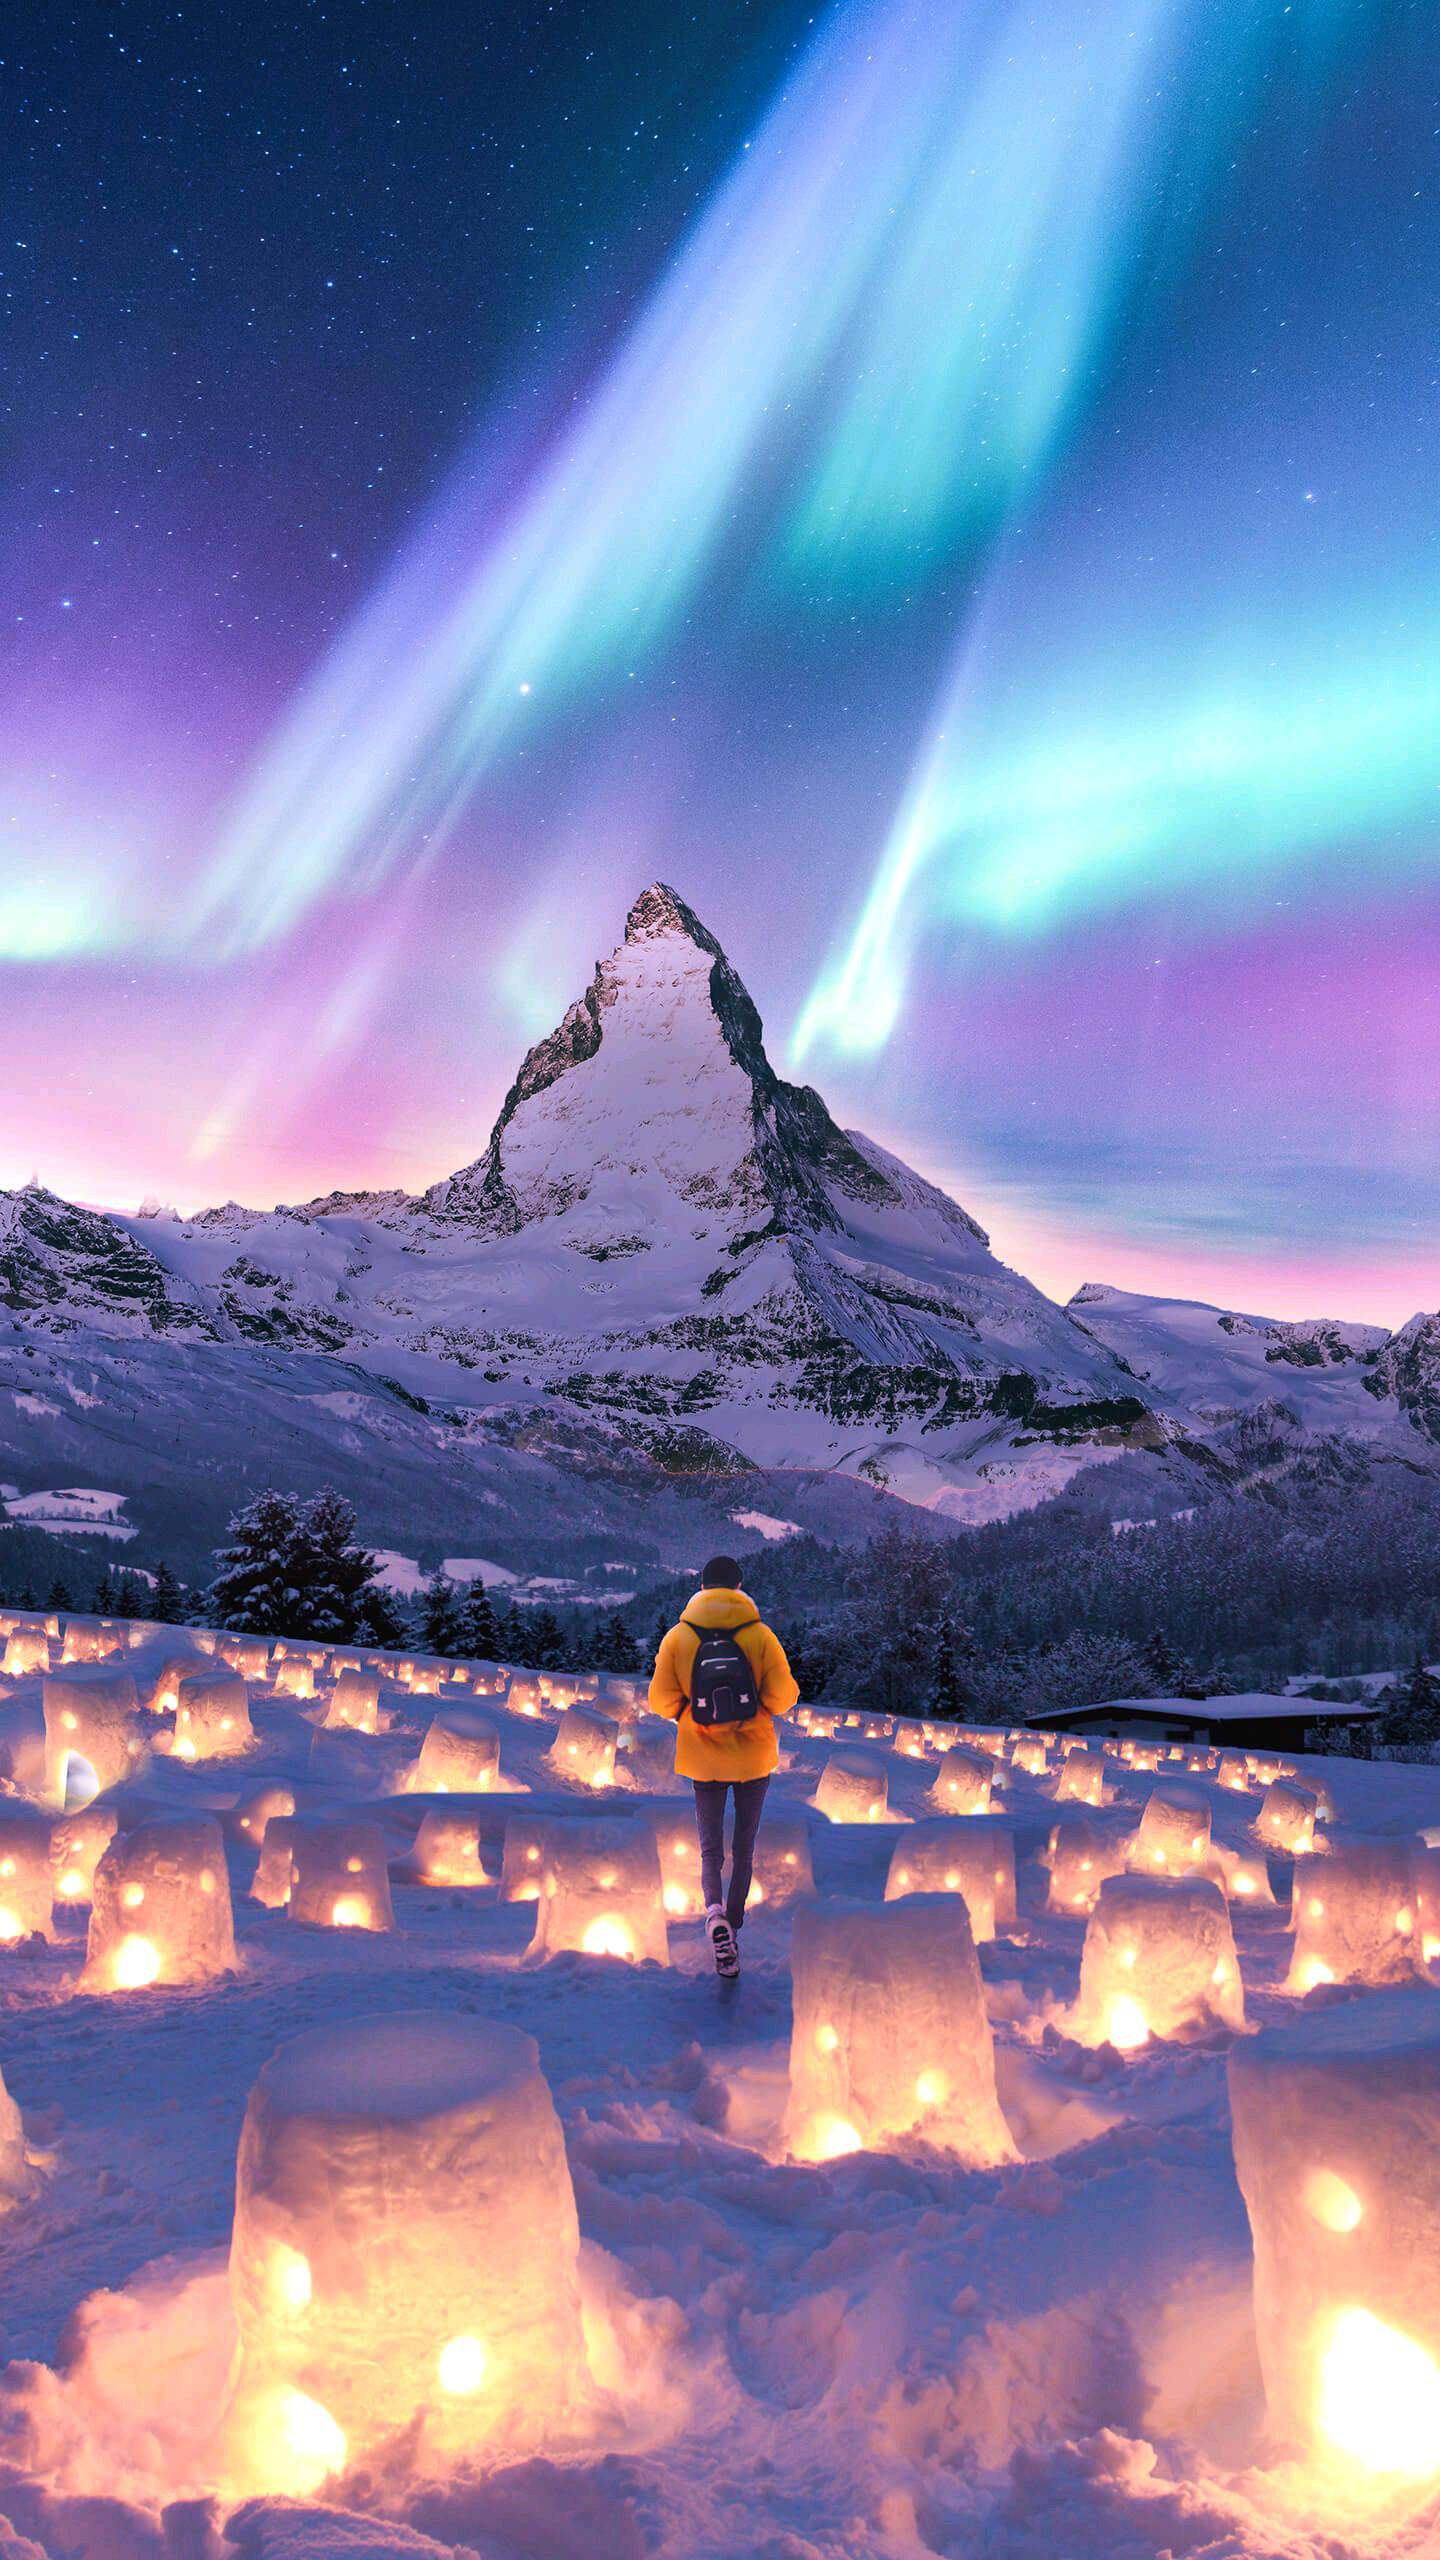 Cute Christmas Wallpaper Quotes Alps Mountain Switzerland Valley Of Snow Lanterns Iphone